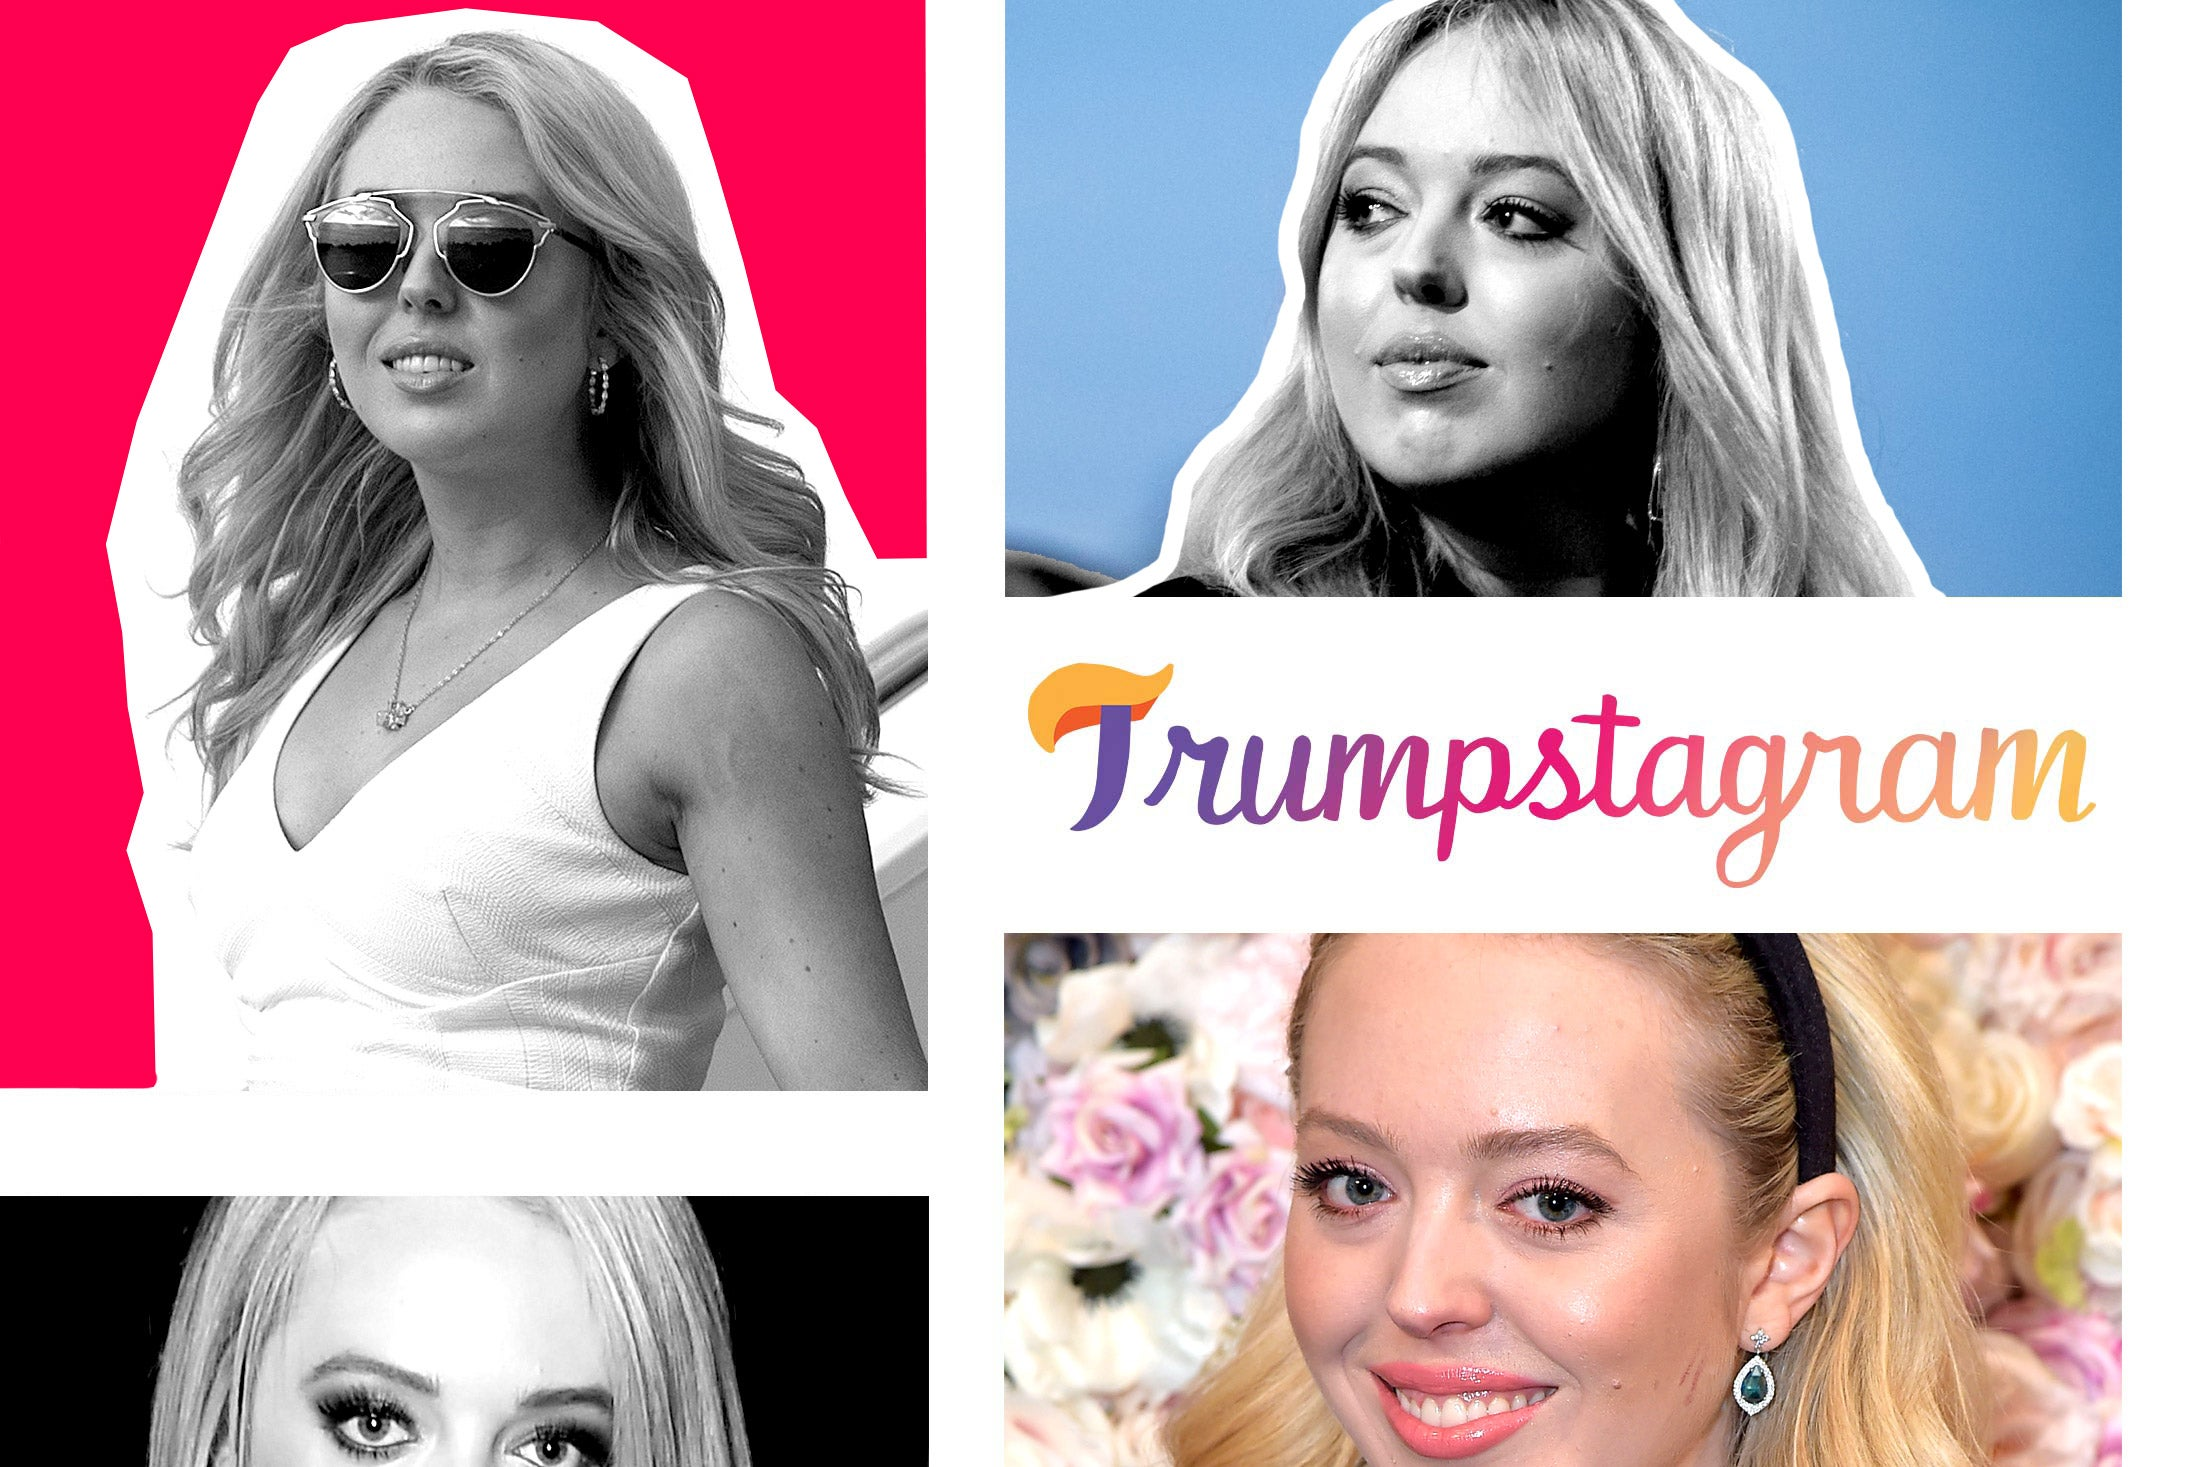 Assorted photos of Tiffany Trump.